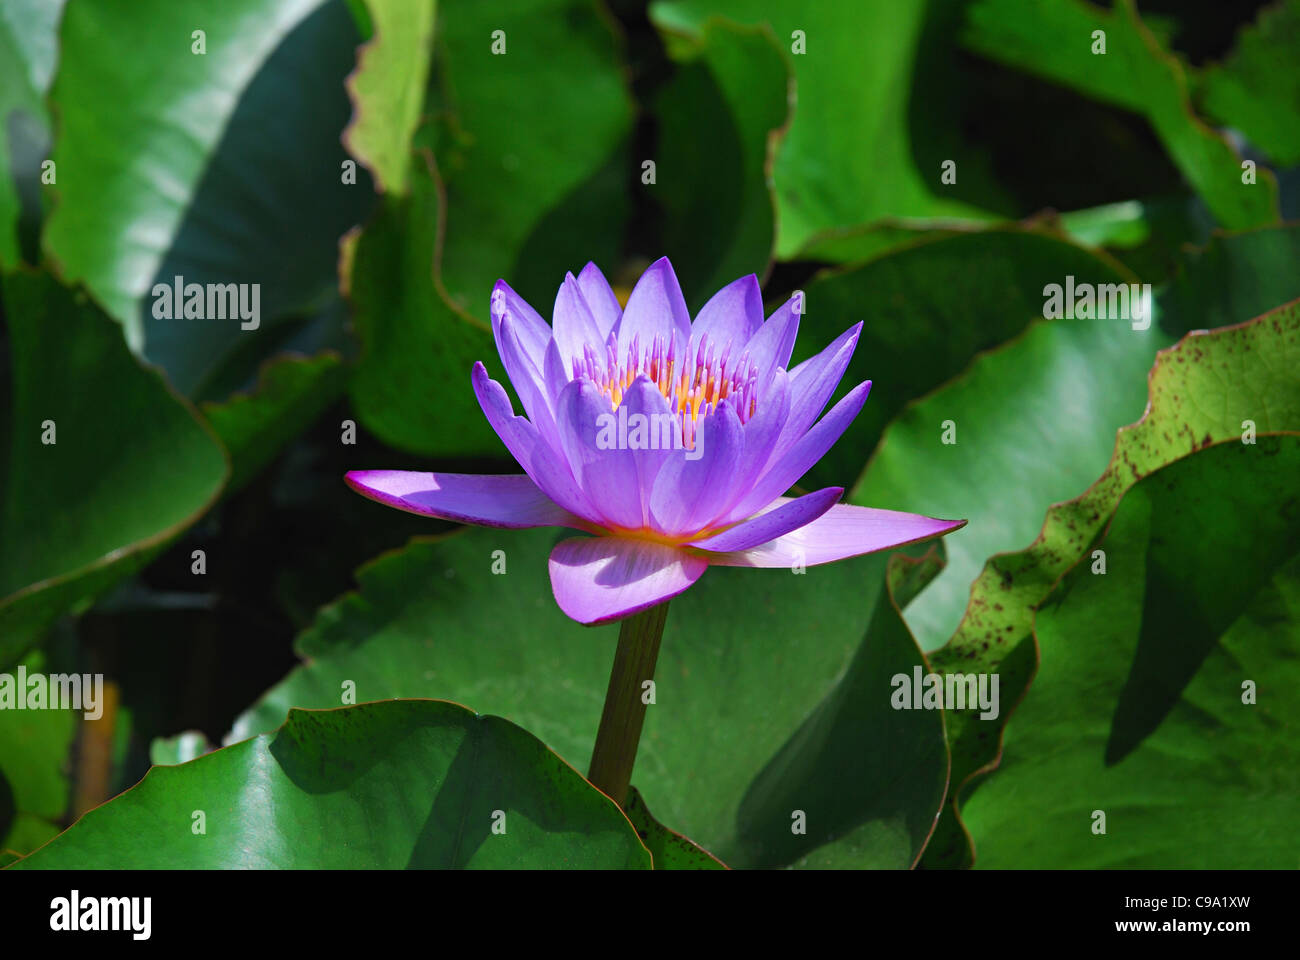 Blue lotus of india stock photos blue lotus of india stock purple lotus sacred lotus nelumbo nucifera family nelumbonaceae lotus is the national flower dhlflorist Images